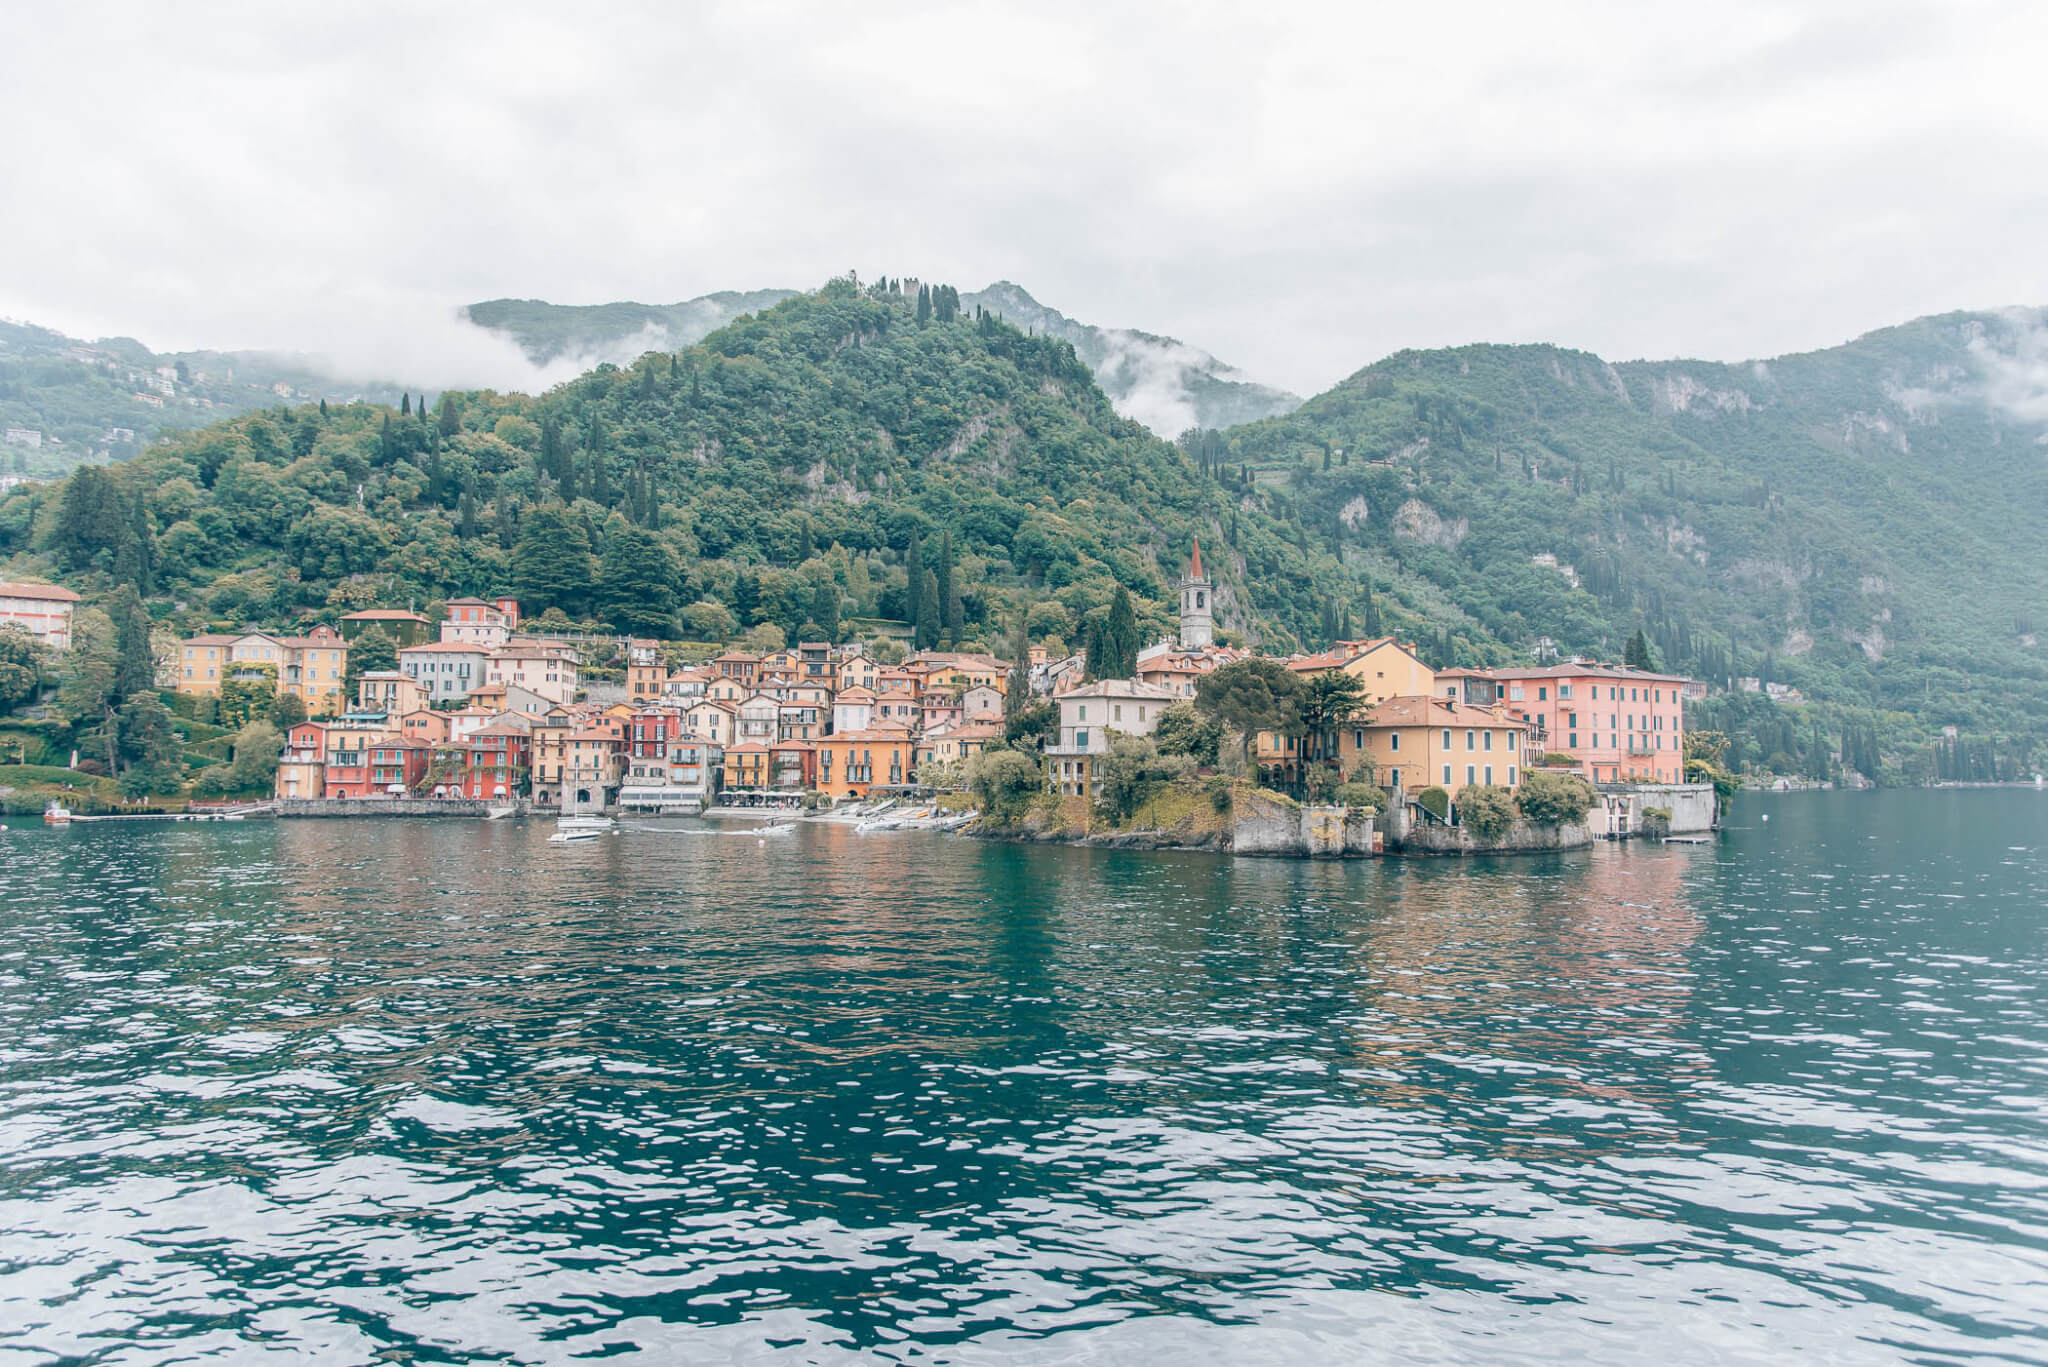 Lake Como travel guide by travel blogger What The Fab